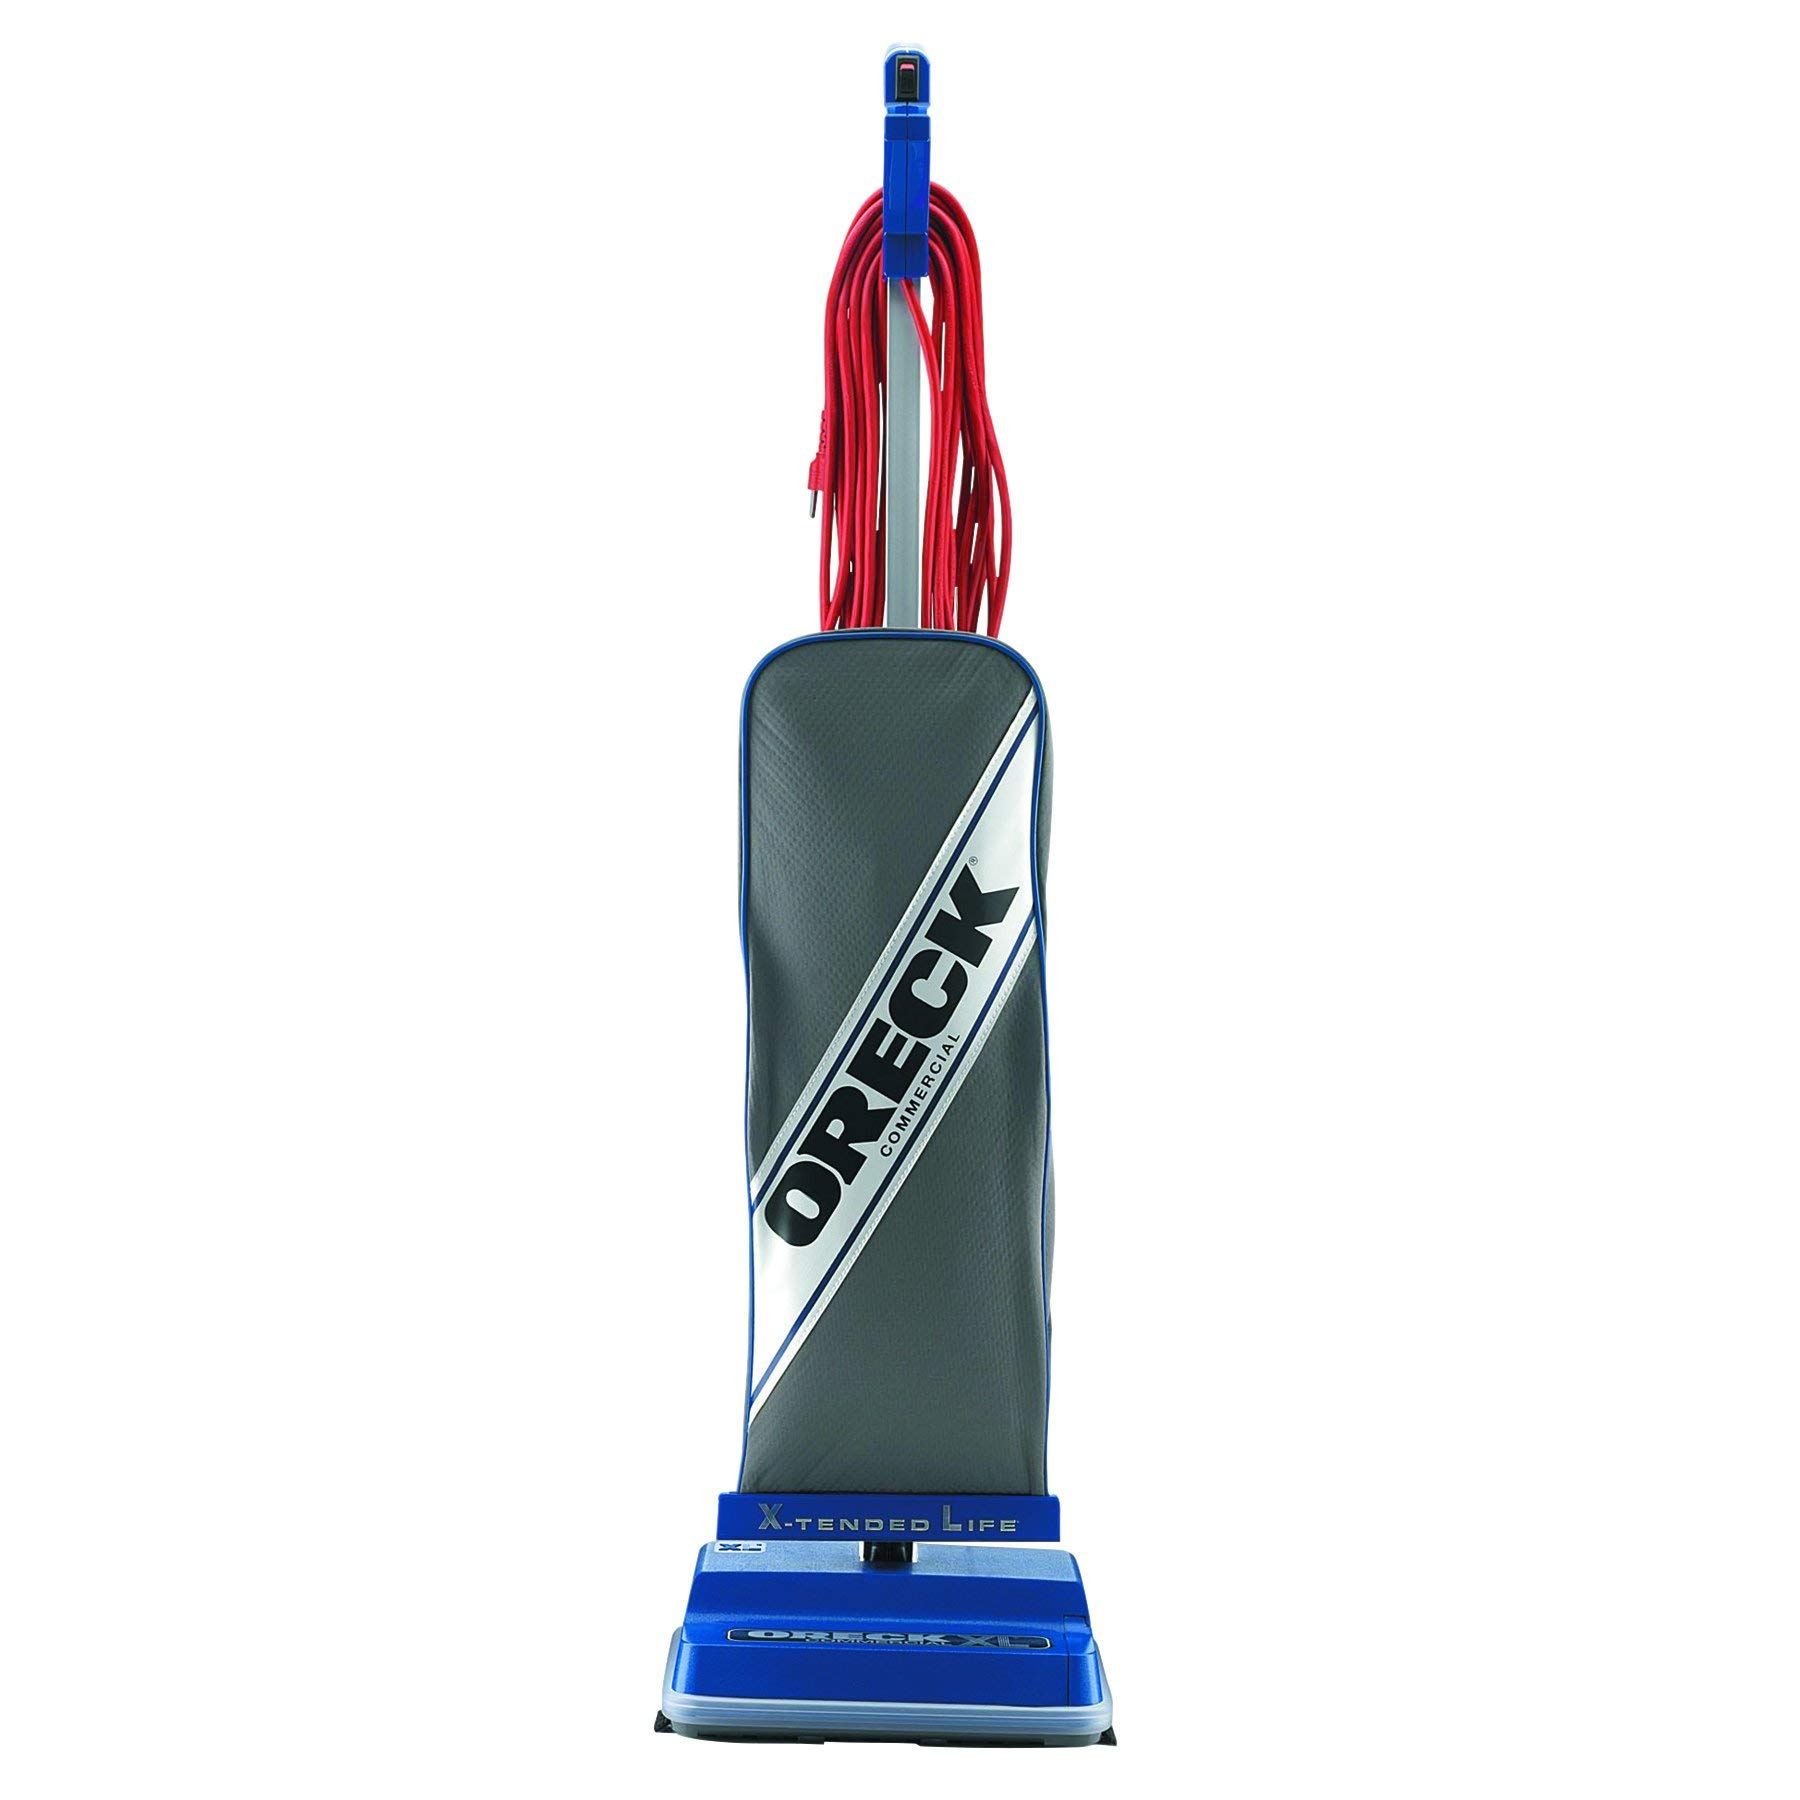 Oreck Commercial Upright Cleaner XL2100RHS